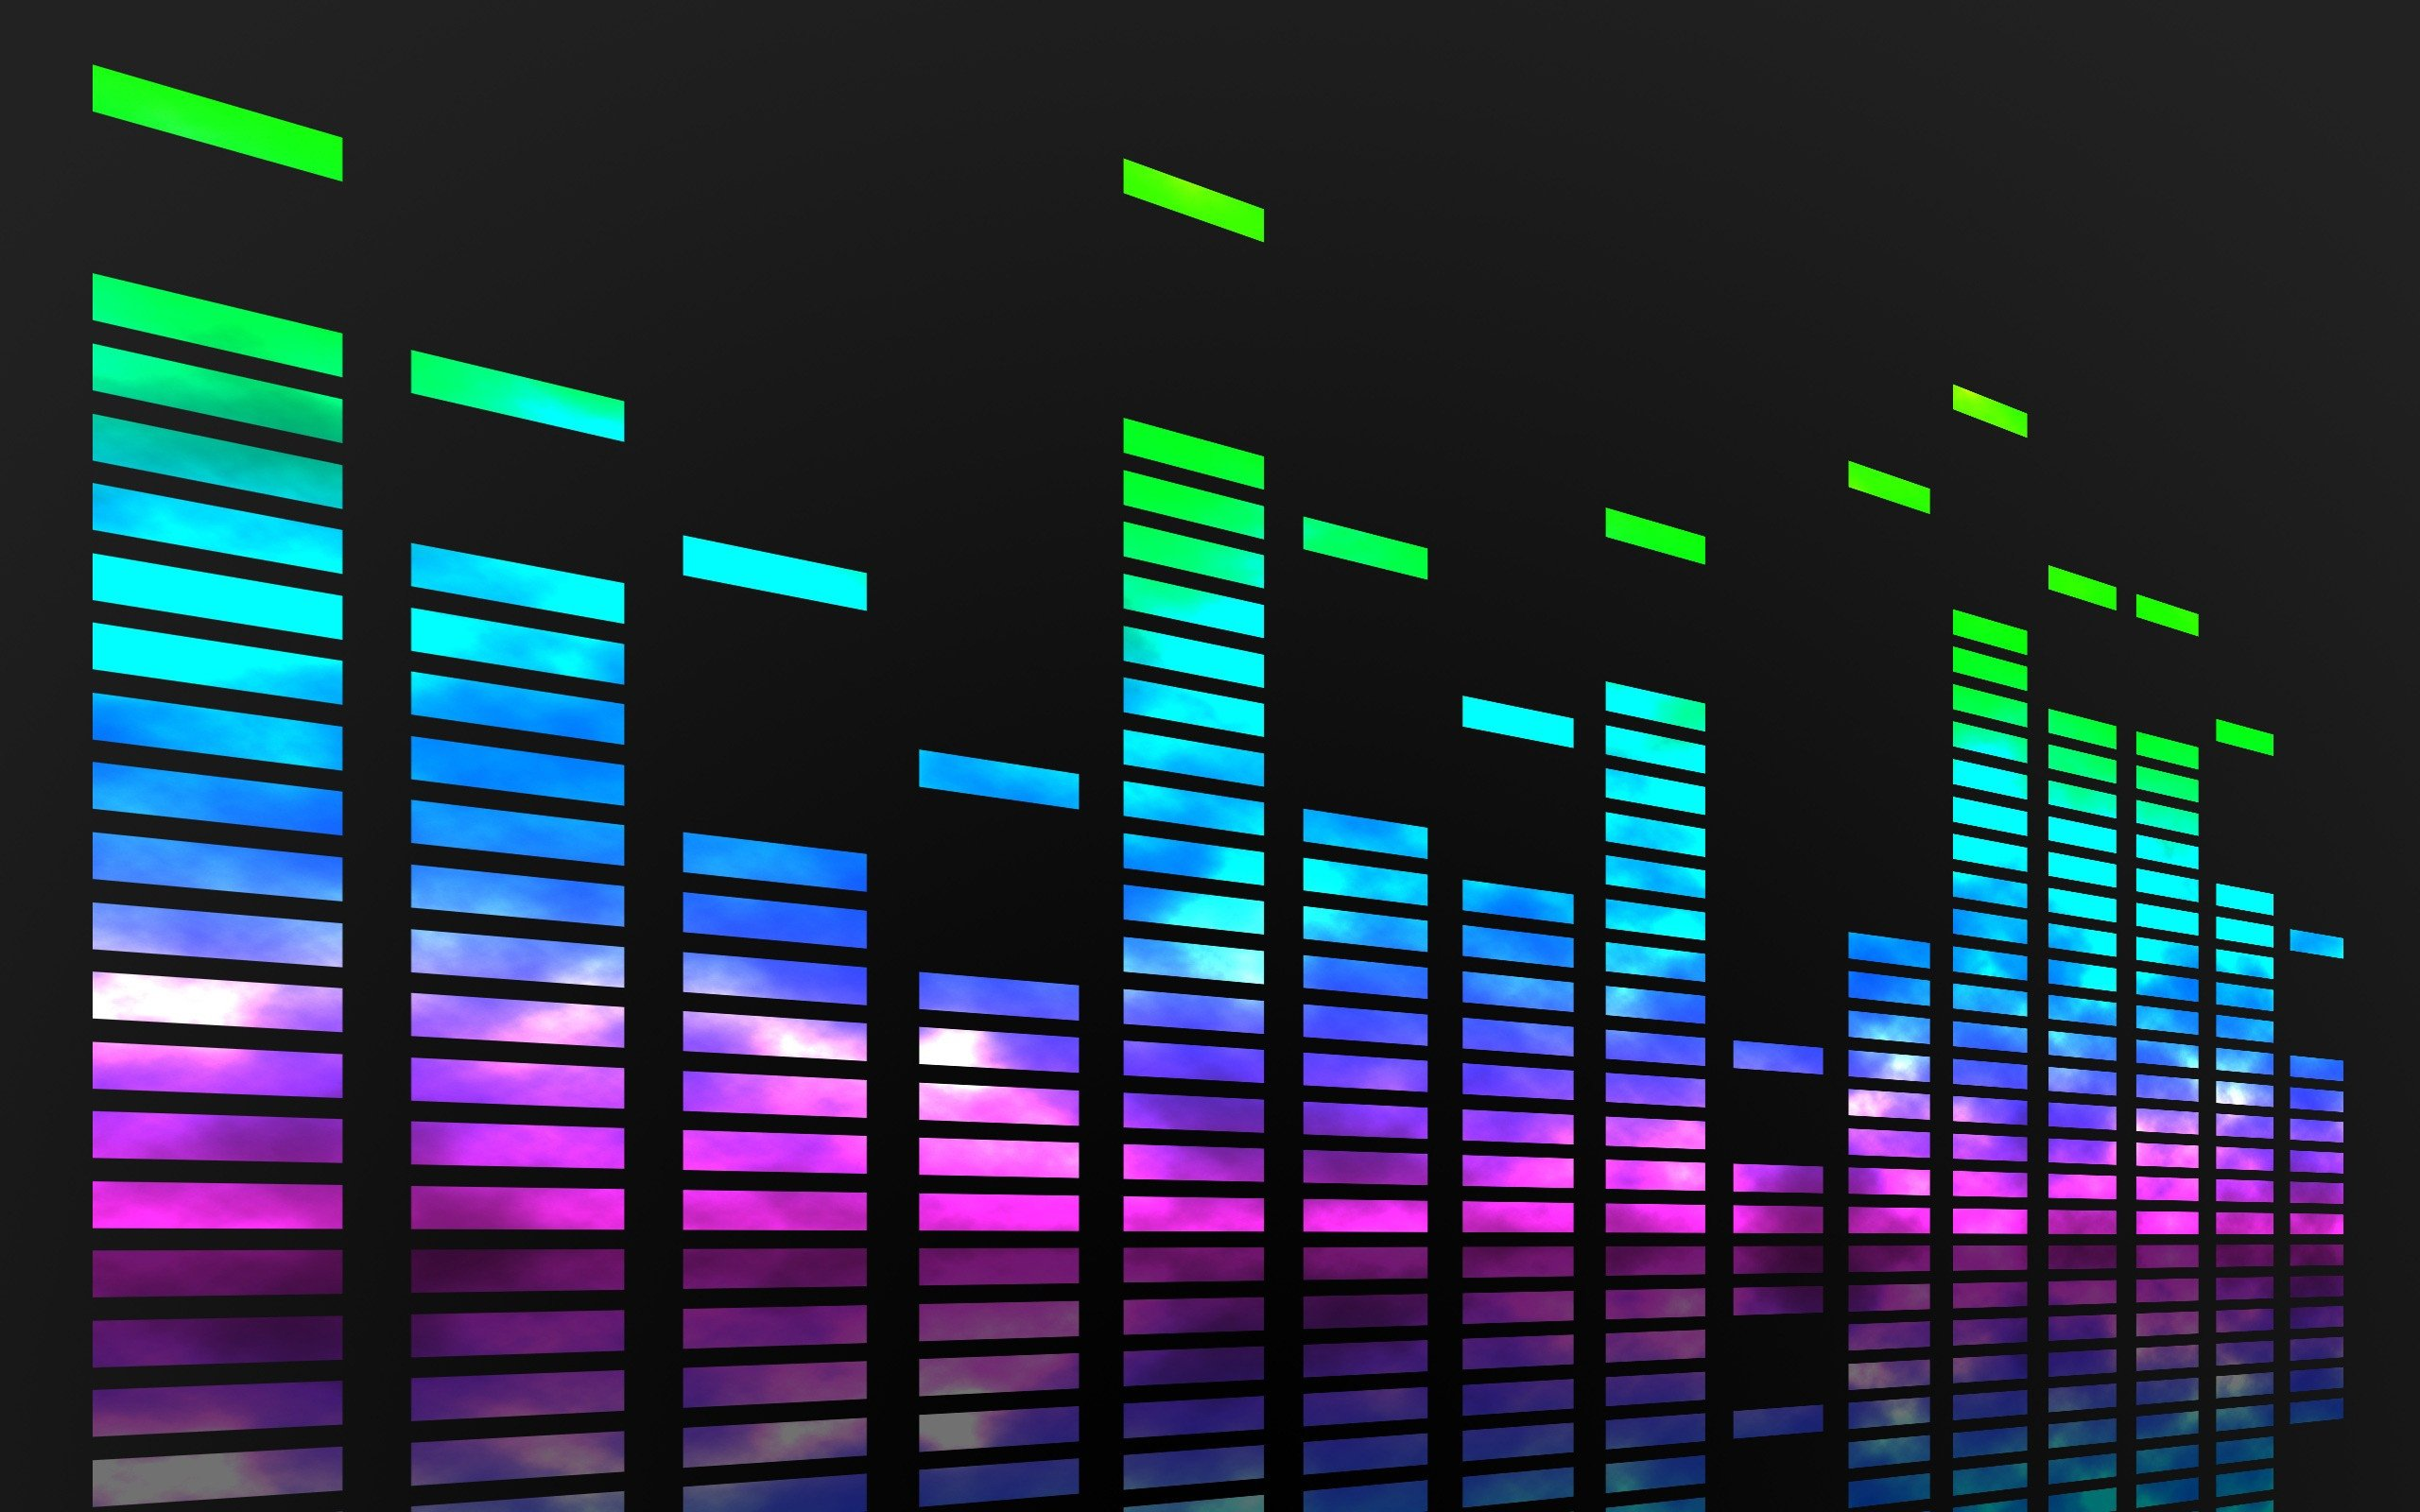 Music Wallpapers and Backgrounds Djcoyotegreatfallsmt Music for Any Celebration